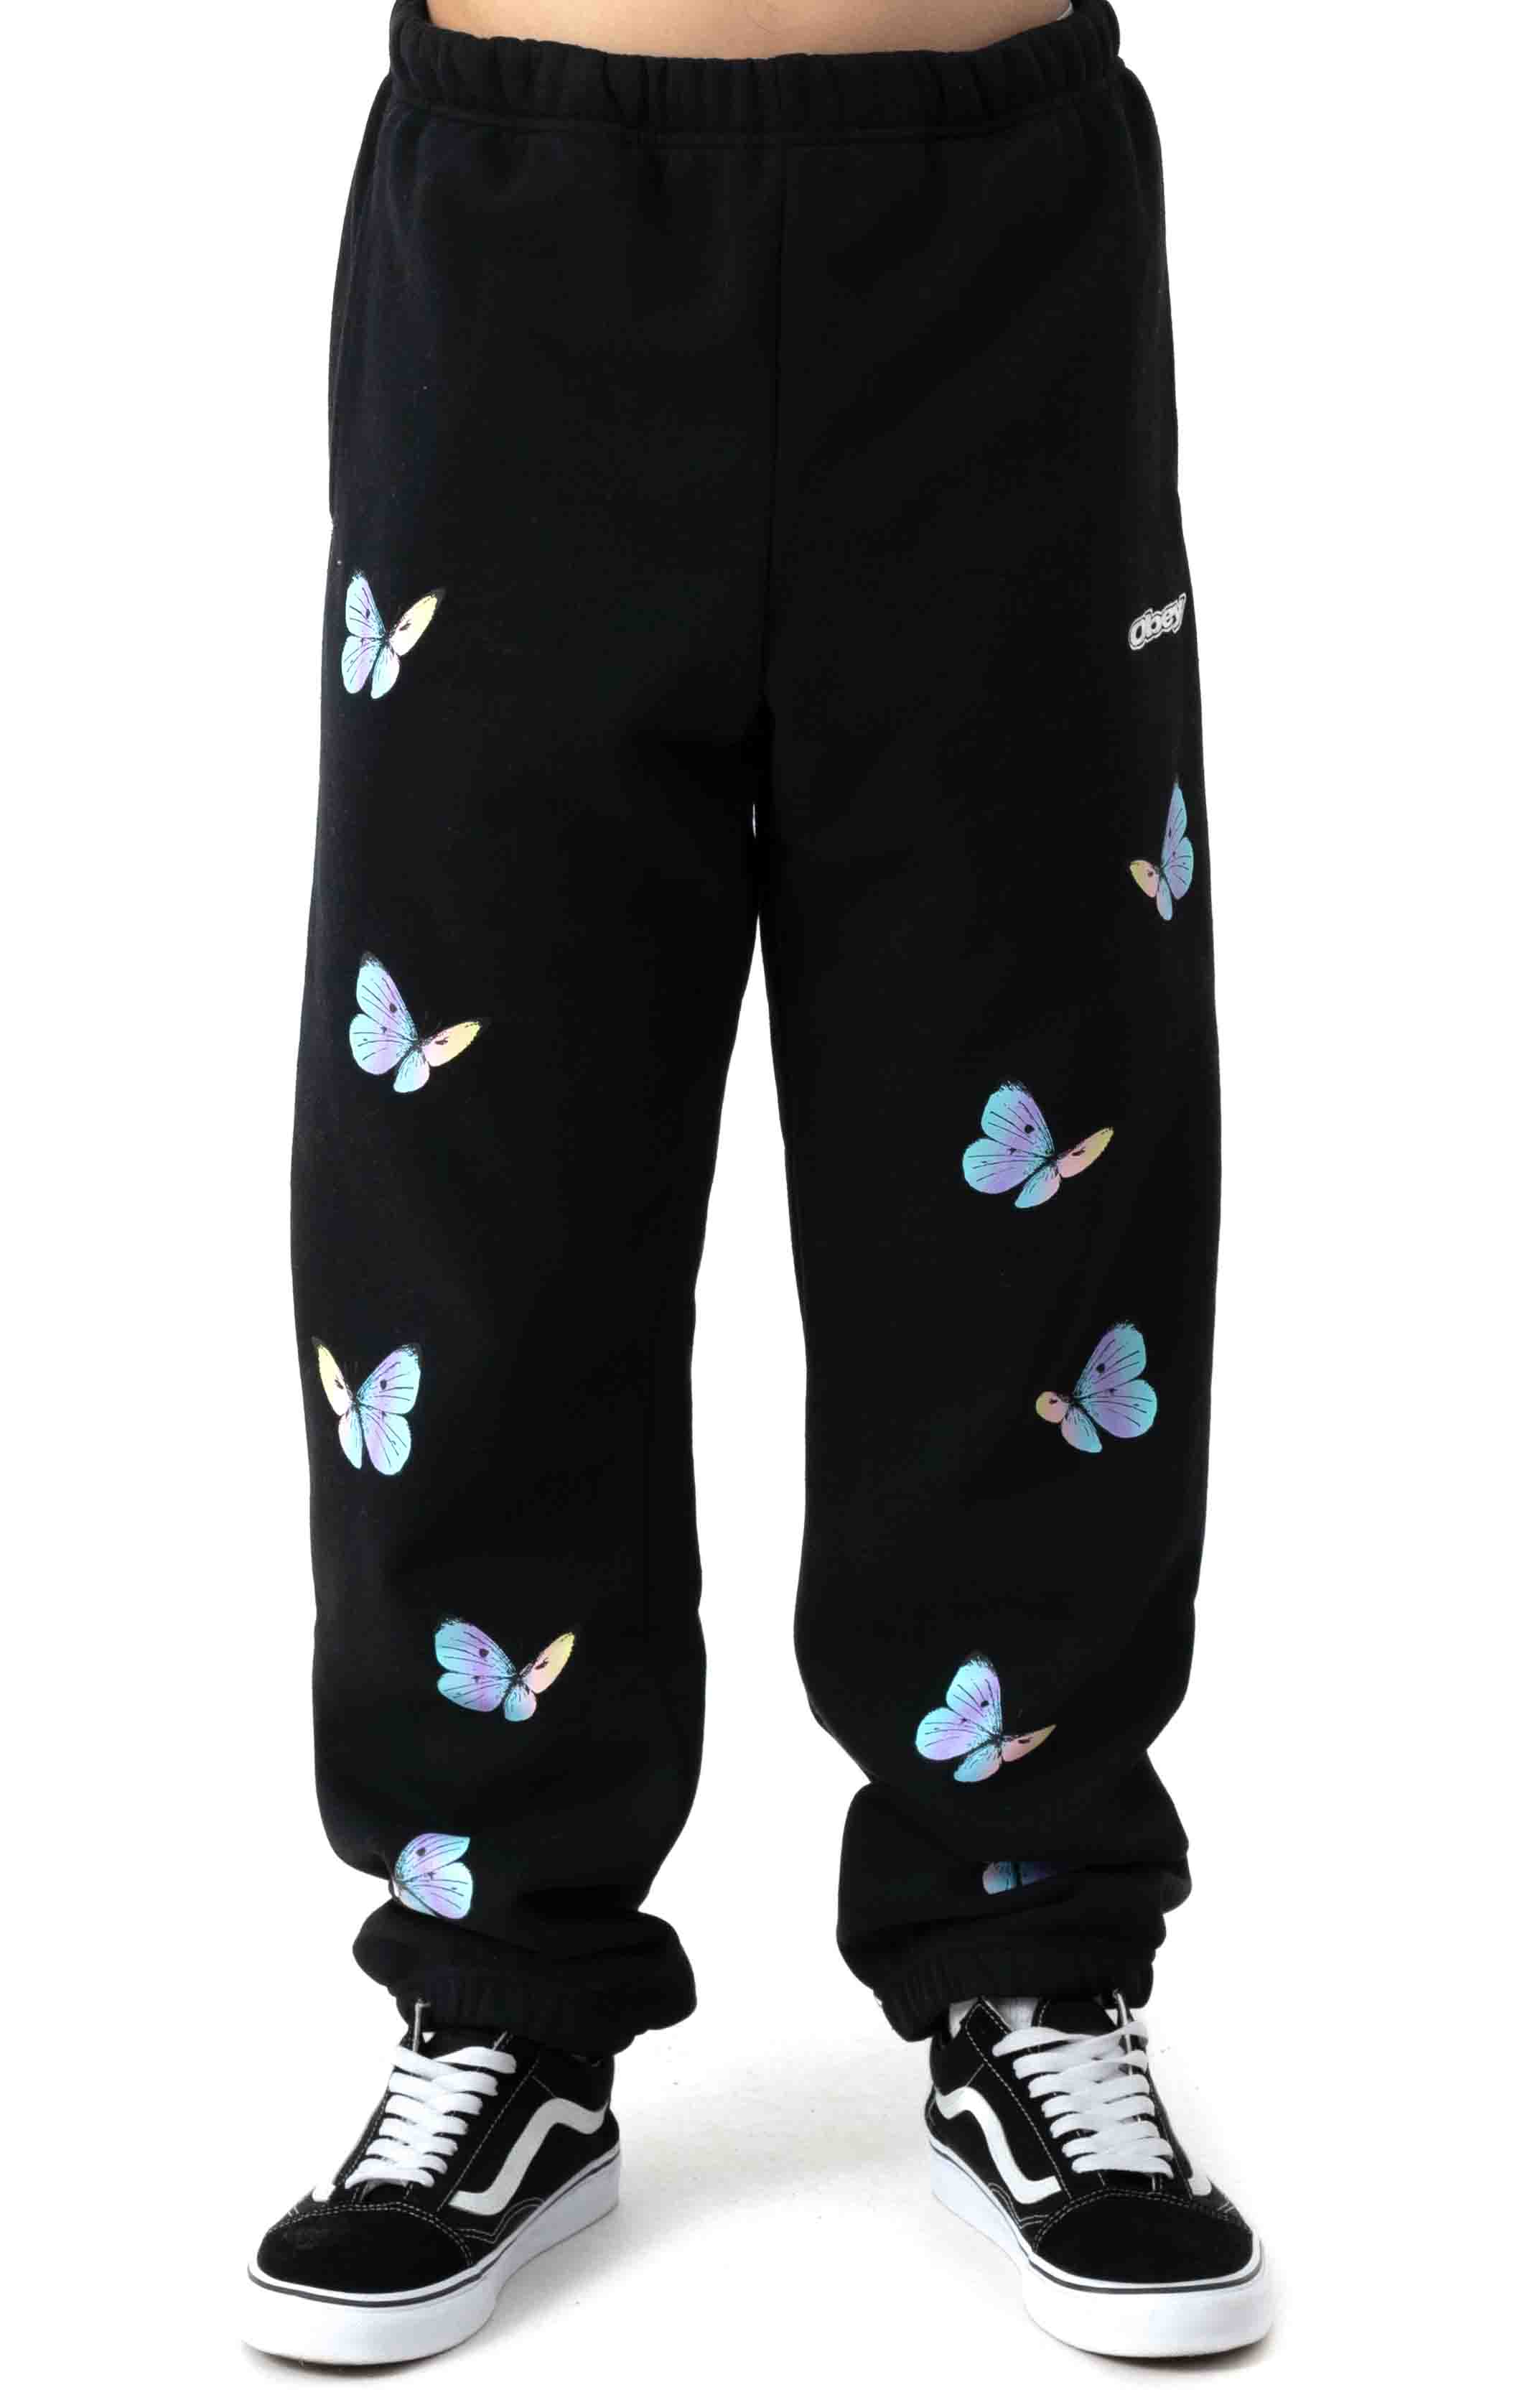 Kyoto Sweatpants - Black 2